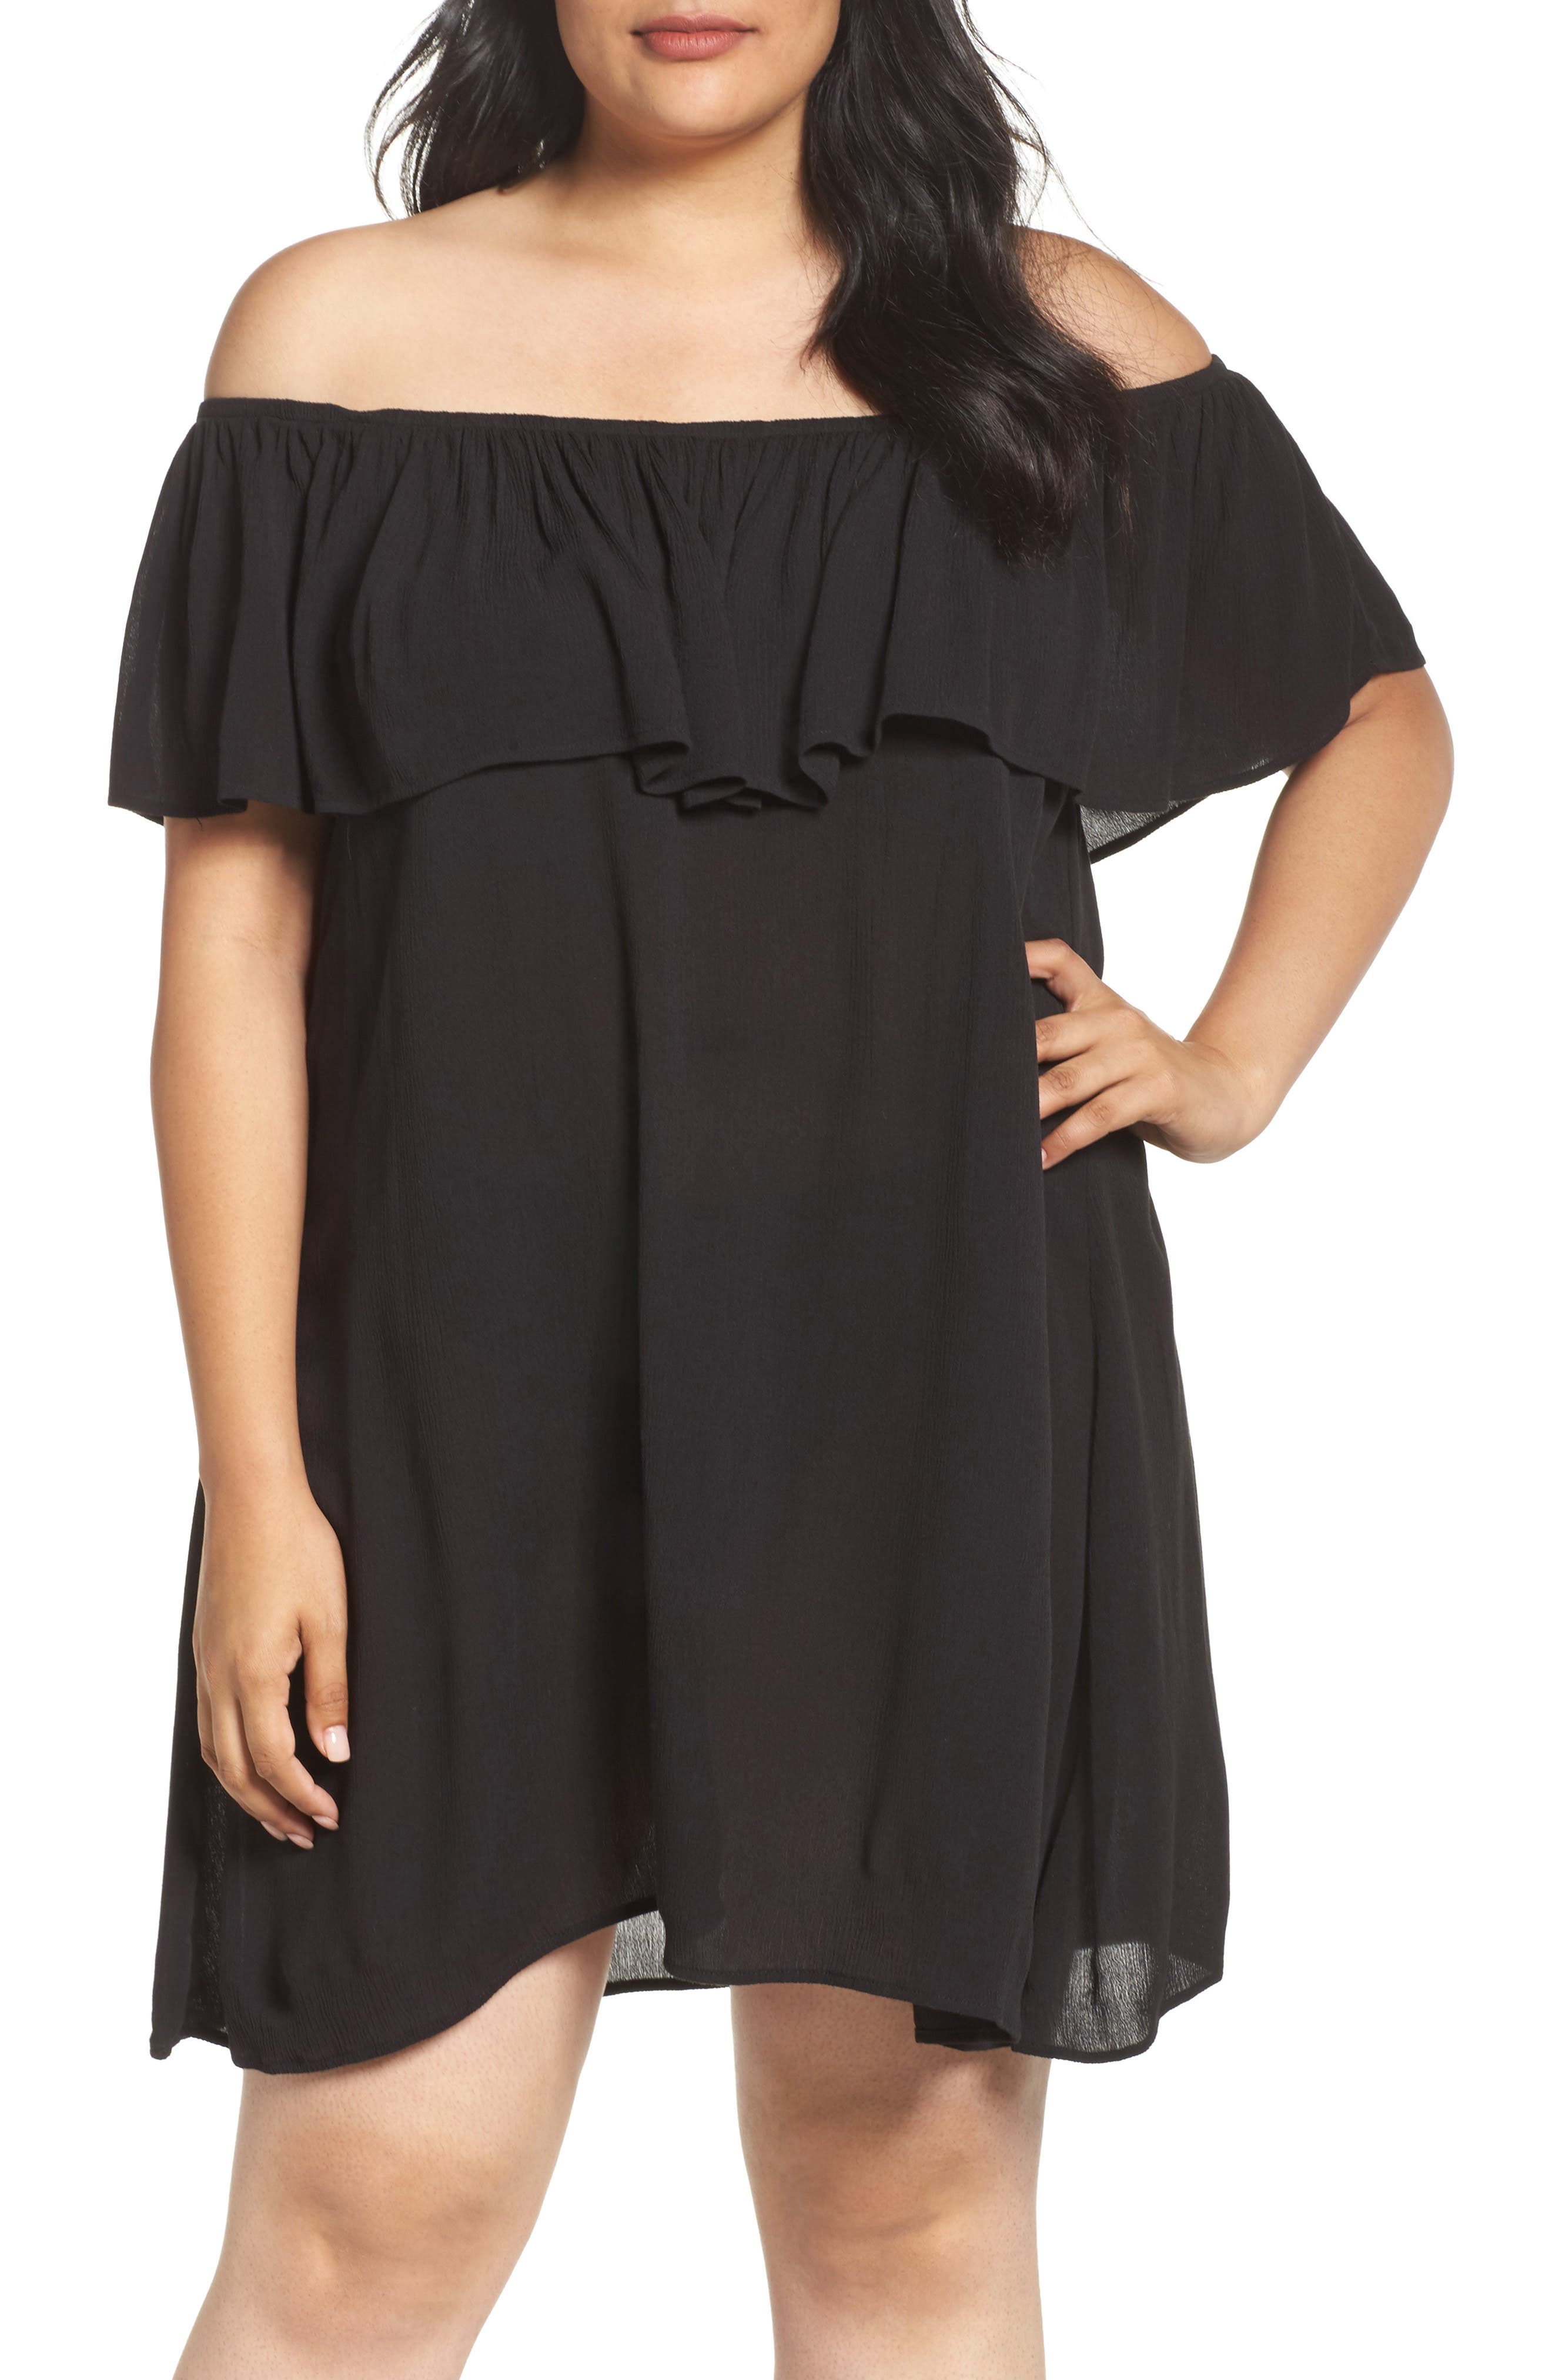 Southern Belle Off the Shoulder Cover-Up Dress,                             Main thumbnail 1, color,